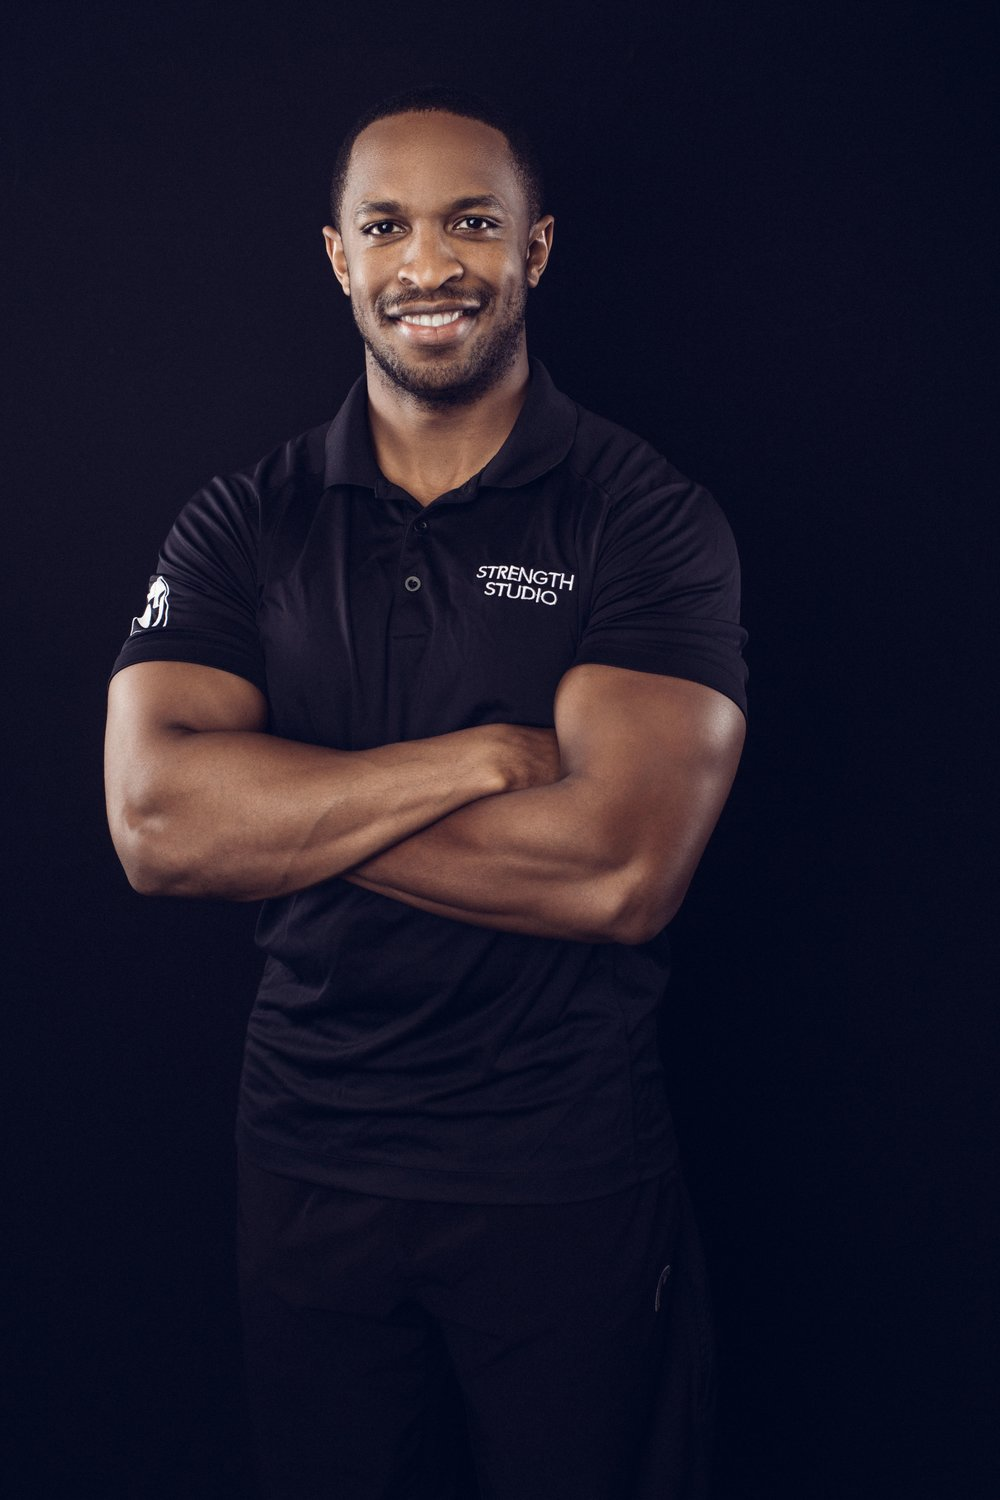 Brian Chacha Personal Trainer Functional Range Conditioning, FRC certified B.S. Kinesiology/Exercise Science Certified Strength and Conditioning Specialist - NSCA